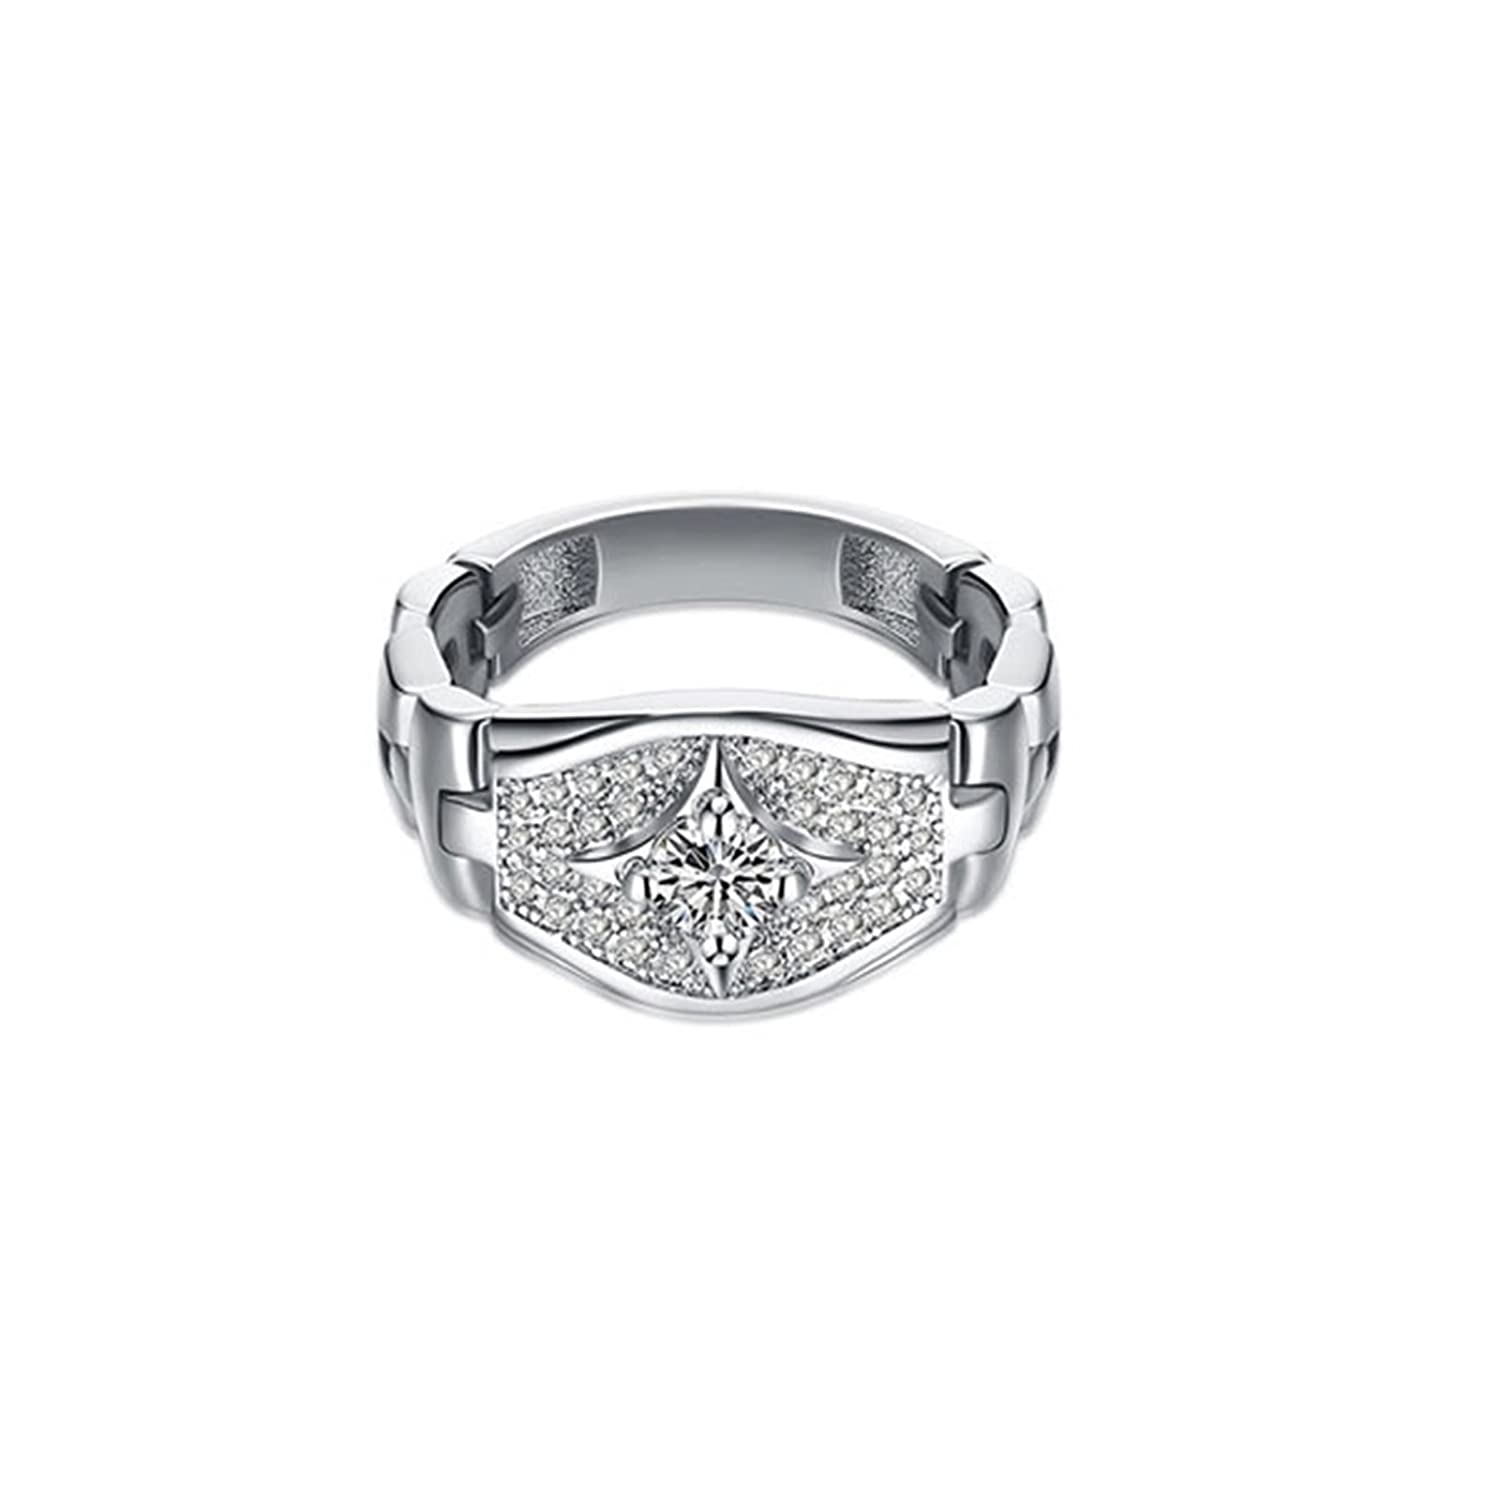 Gnzoe Jewelry Silver Plated Ring For Wowen Crystal Round Shape Wedding Band White